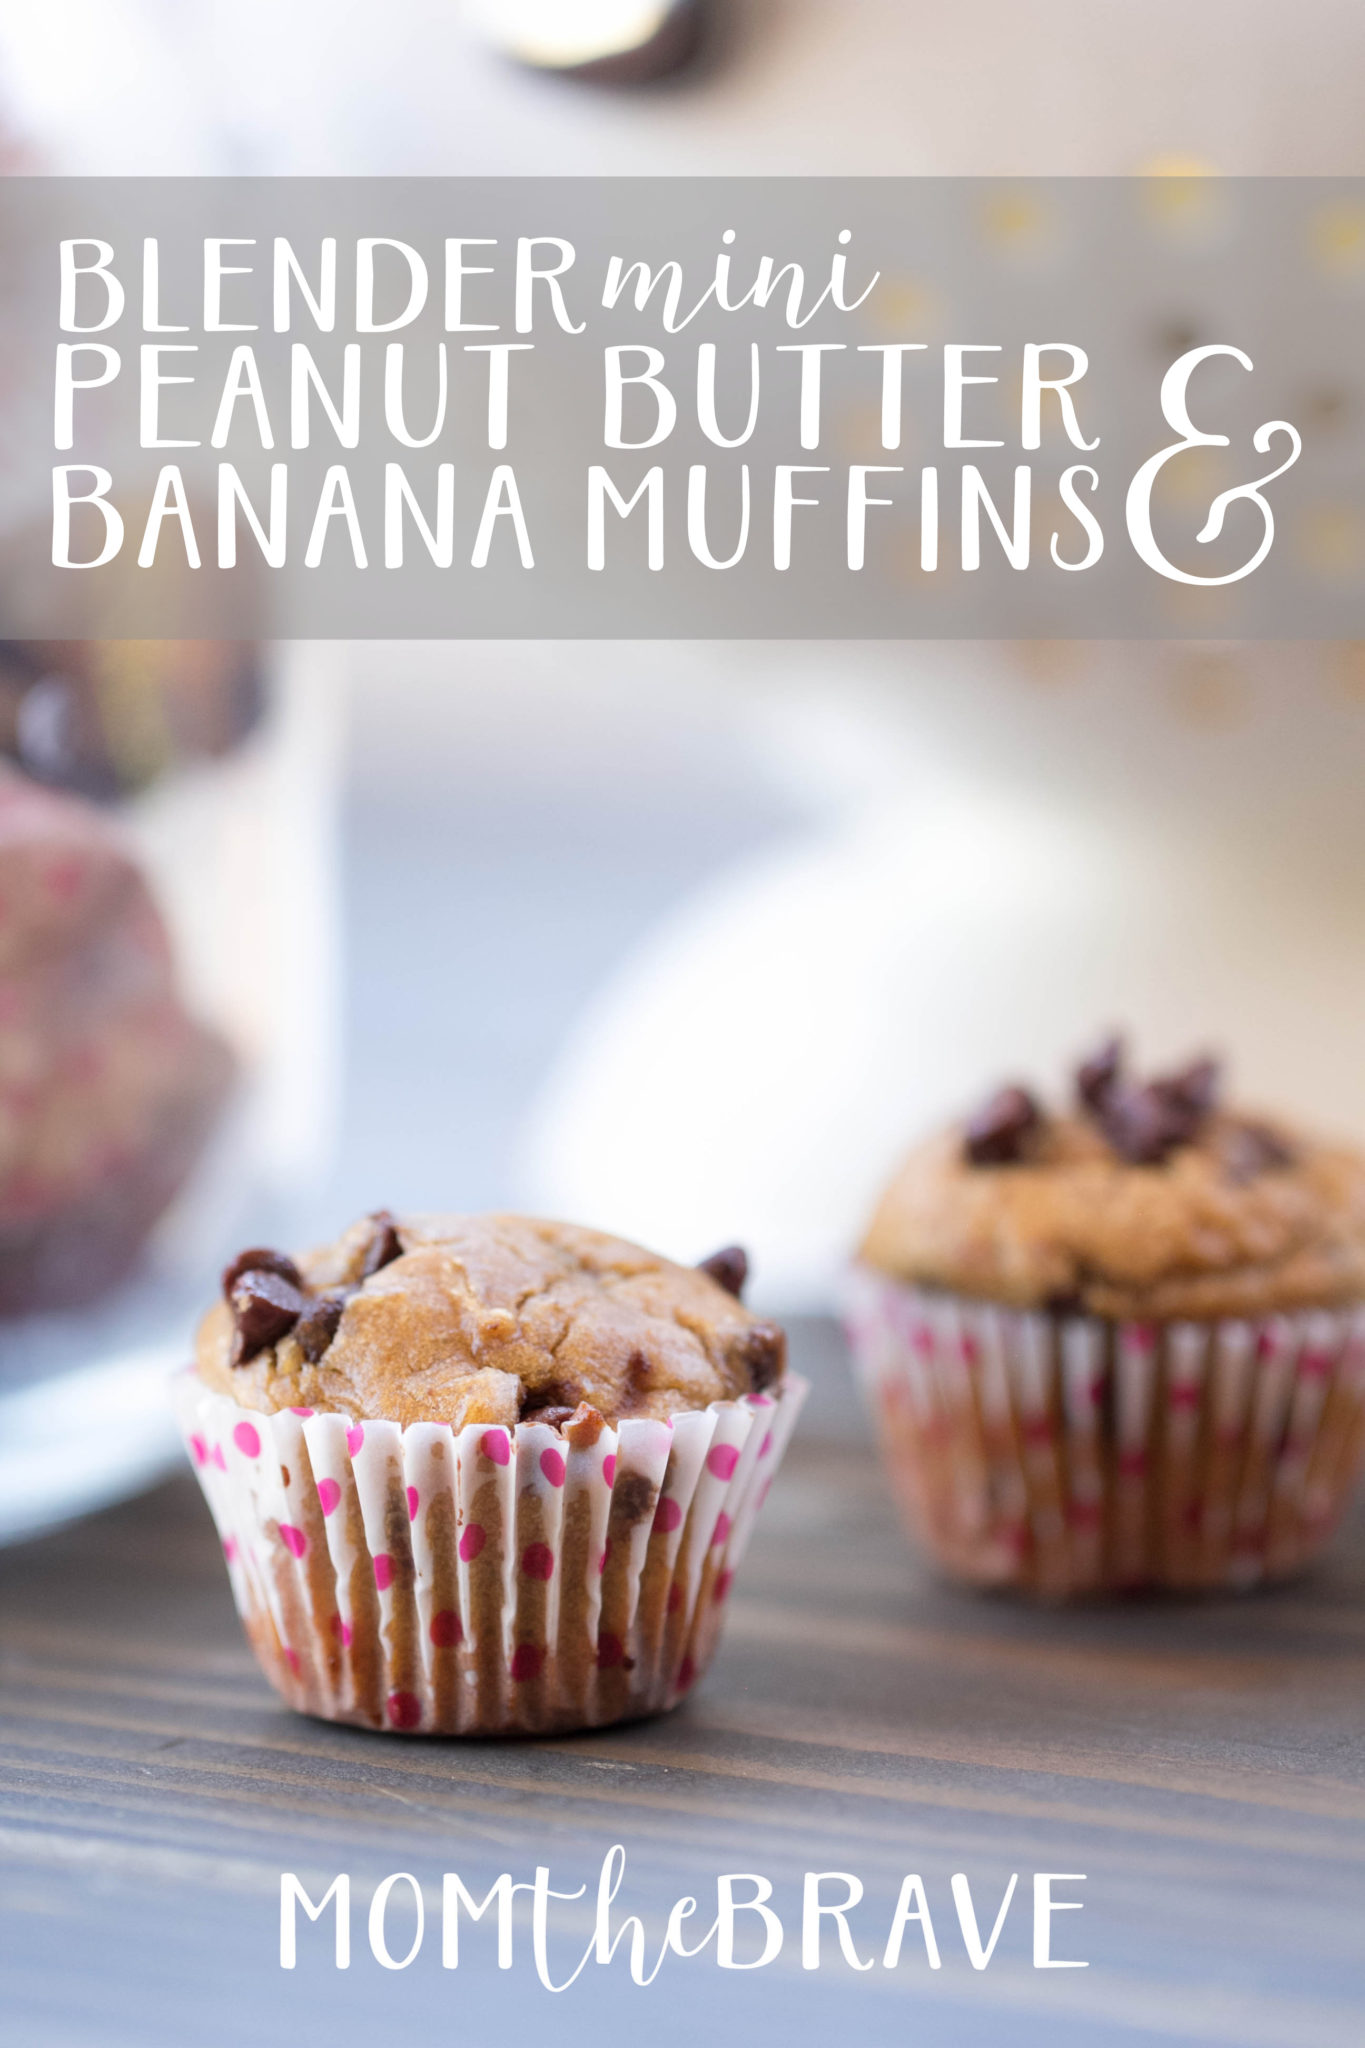 Blender Mini Peanut Butter Banana Muffins